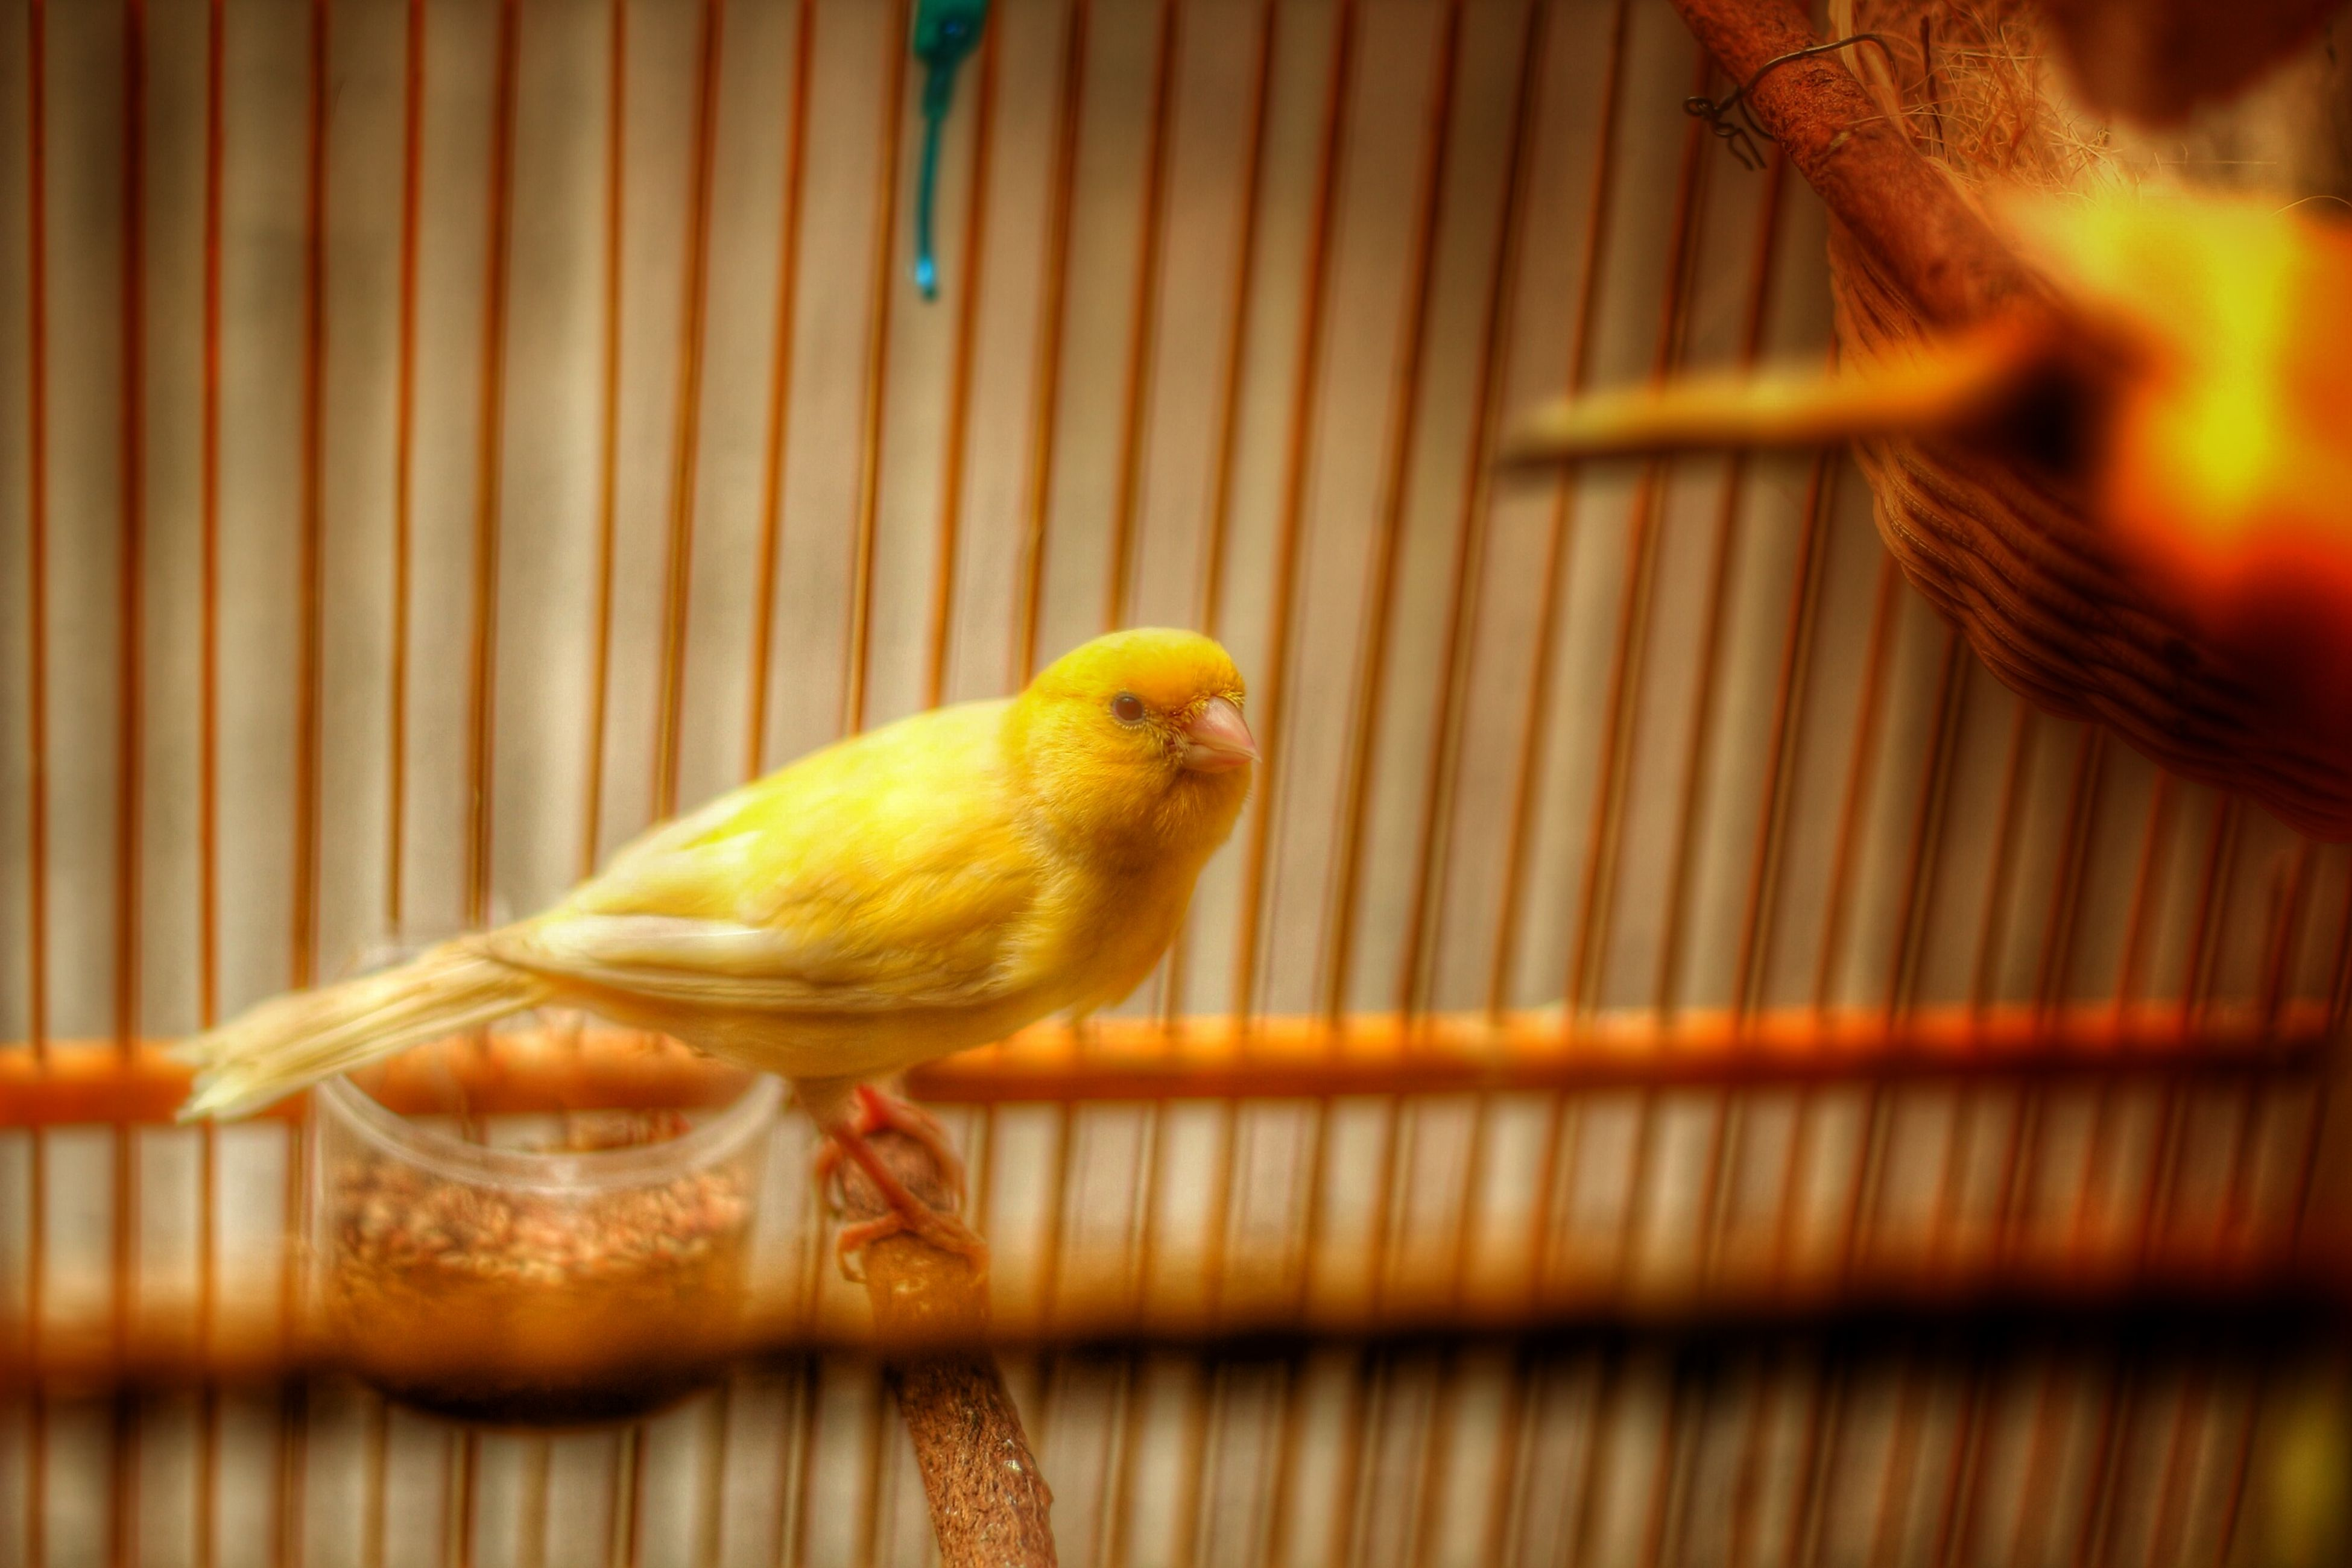 animal themes, one animal, animals in the wild, wildlife, yellow, close-up, cage, bird, focus on foreground, animals in captivity, selective focus, perching, wood - material, zoology, outdoors, no people, side view, day, nature, full length